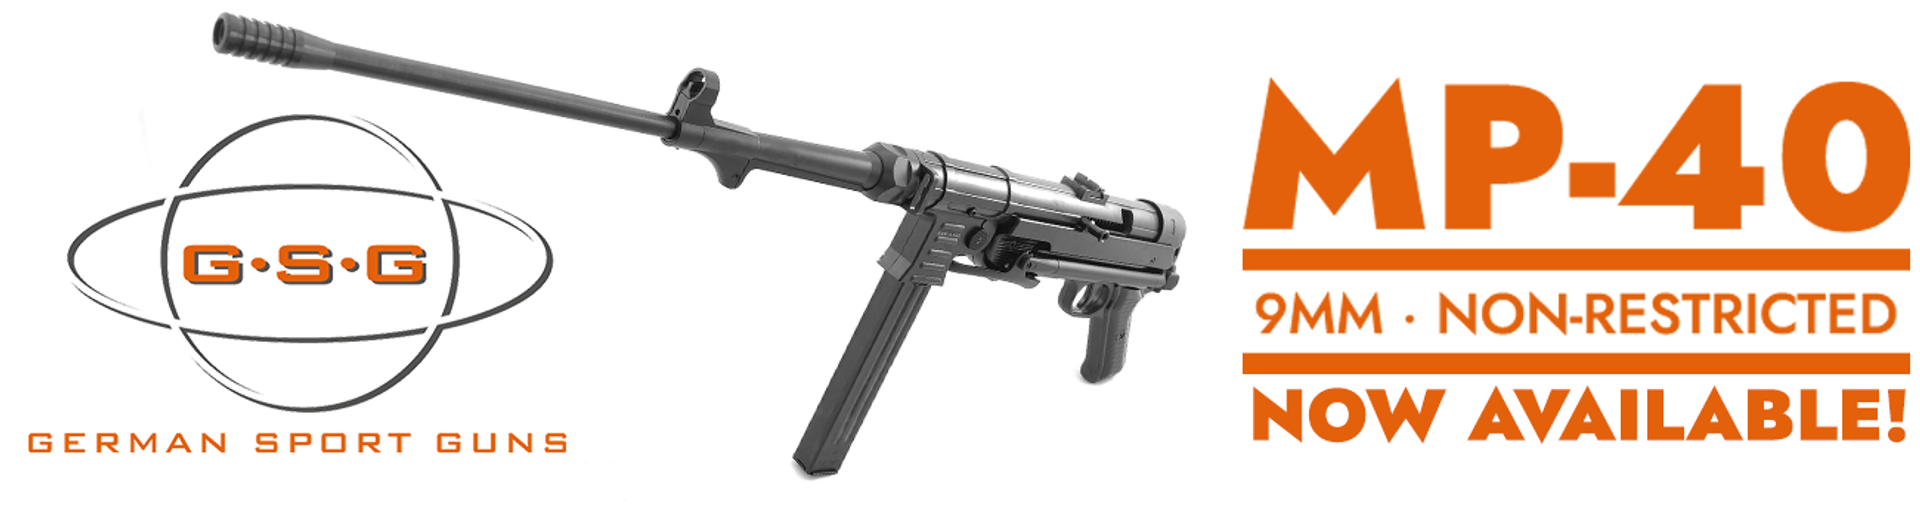 Just Arrived at Al Flaherty's in Toronto - the non-restricted GSG MP40 9mm Carbine!